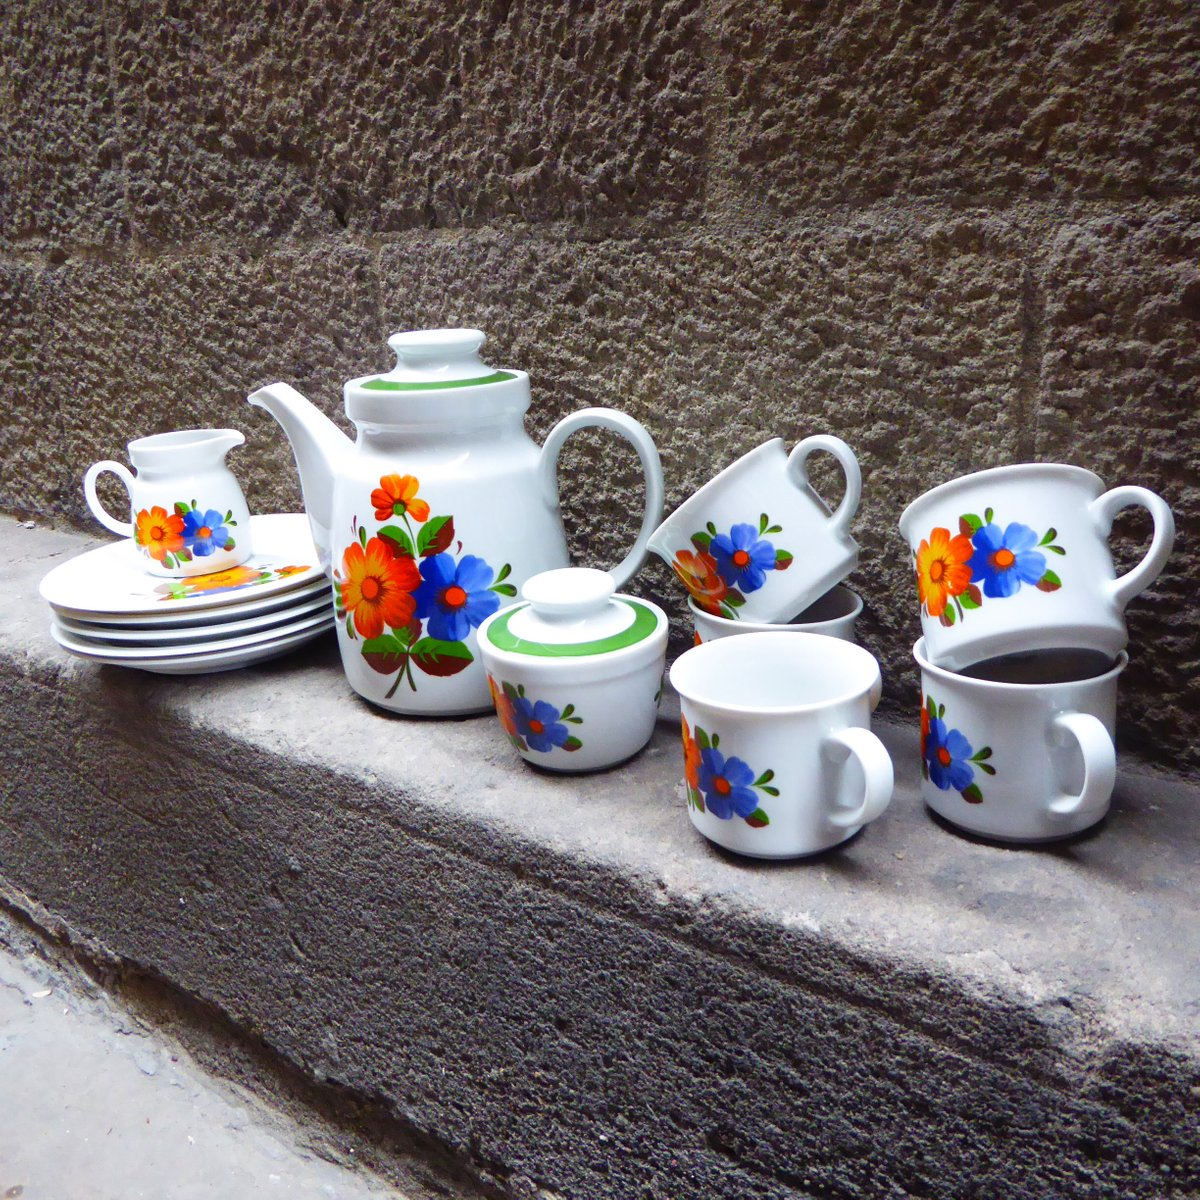 Mid-Century German Coffee Service from Winterling Roslau 1960s Set of 13 & Mid-Century German Coffee Service from Winterling Roslau 1960s Set ...